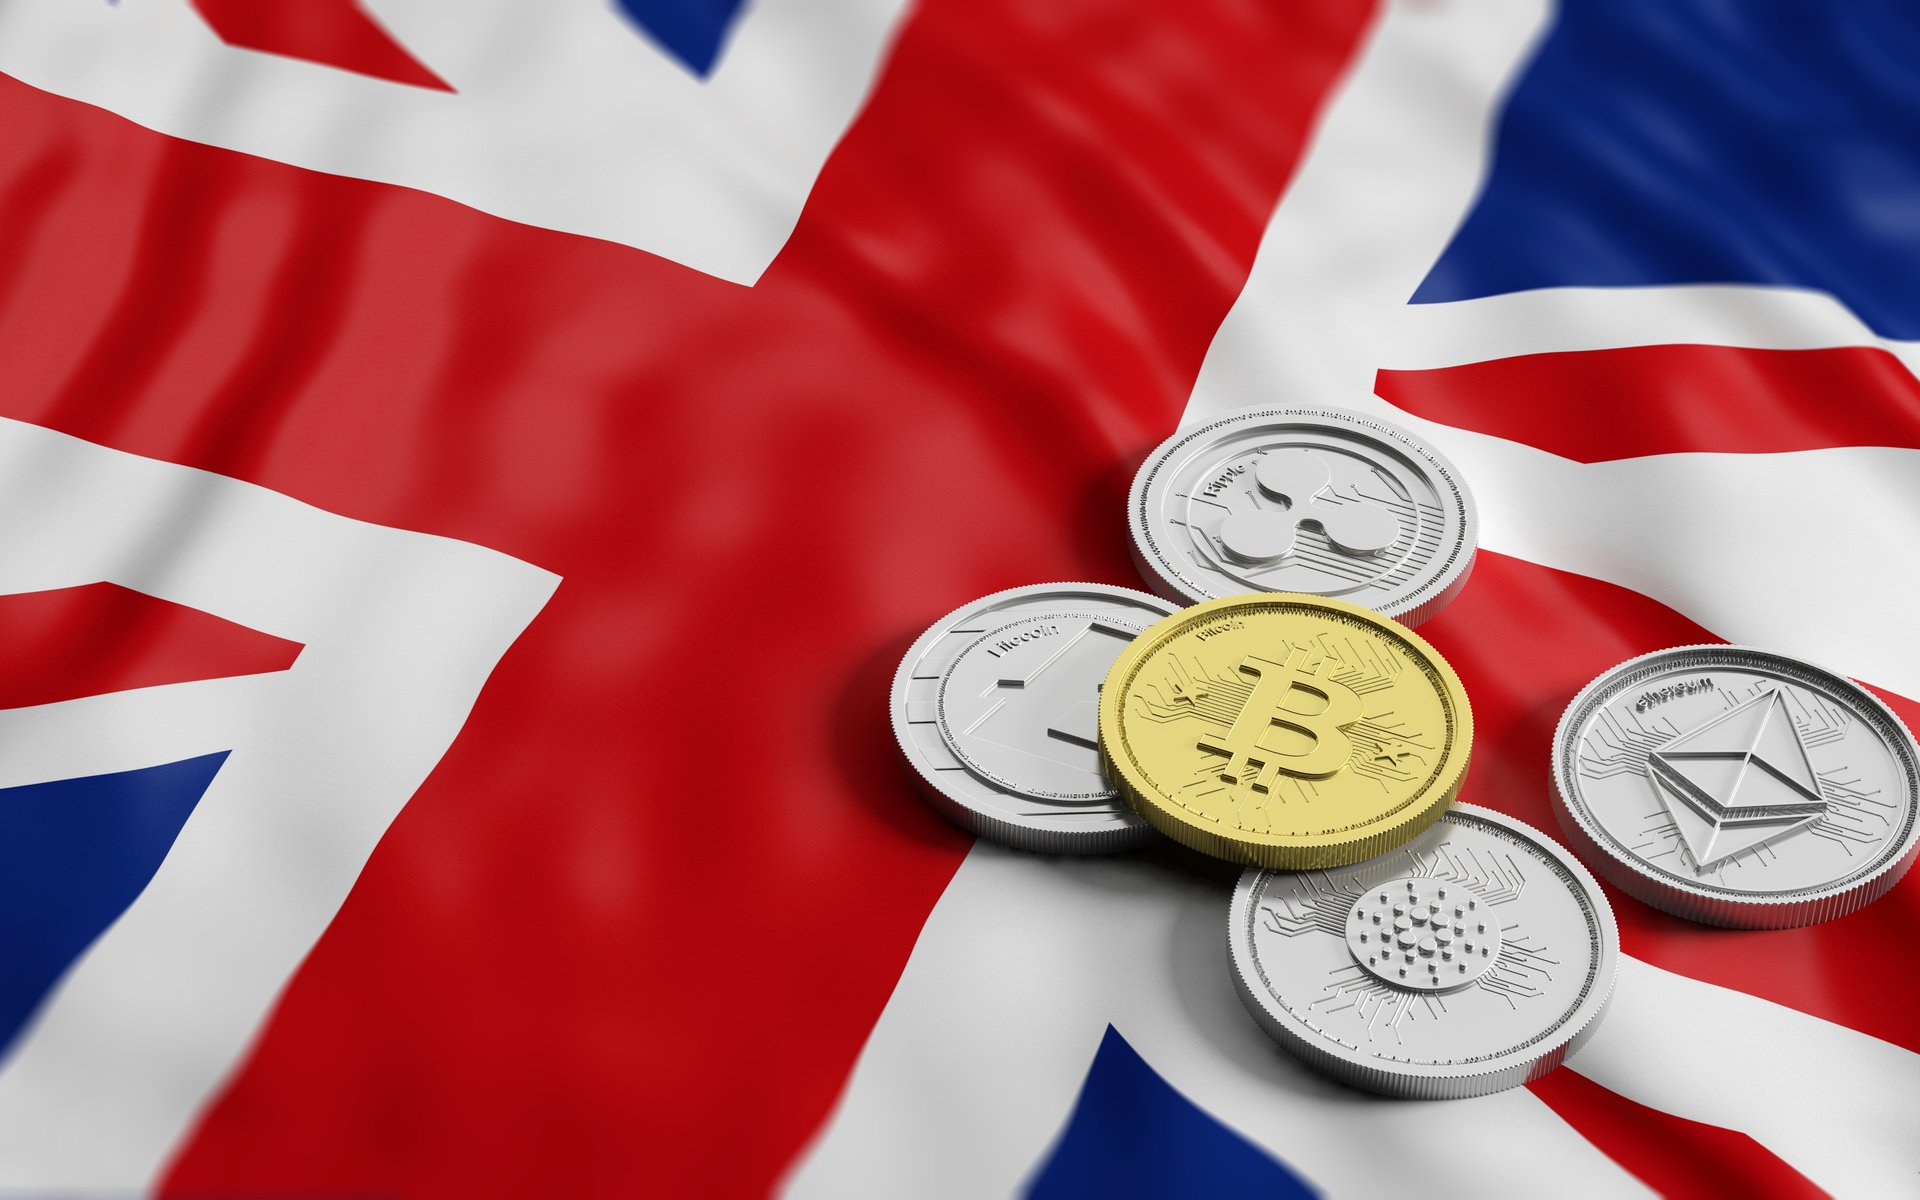 UK UPDATED CRYPTO GUIDELINES RELEASED